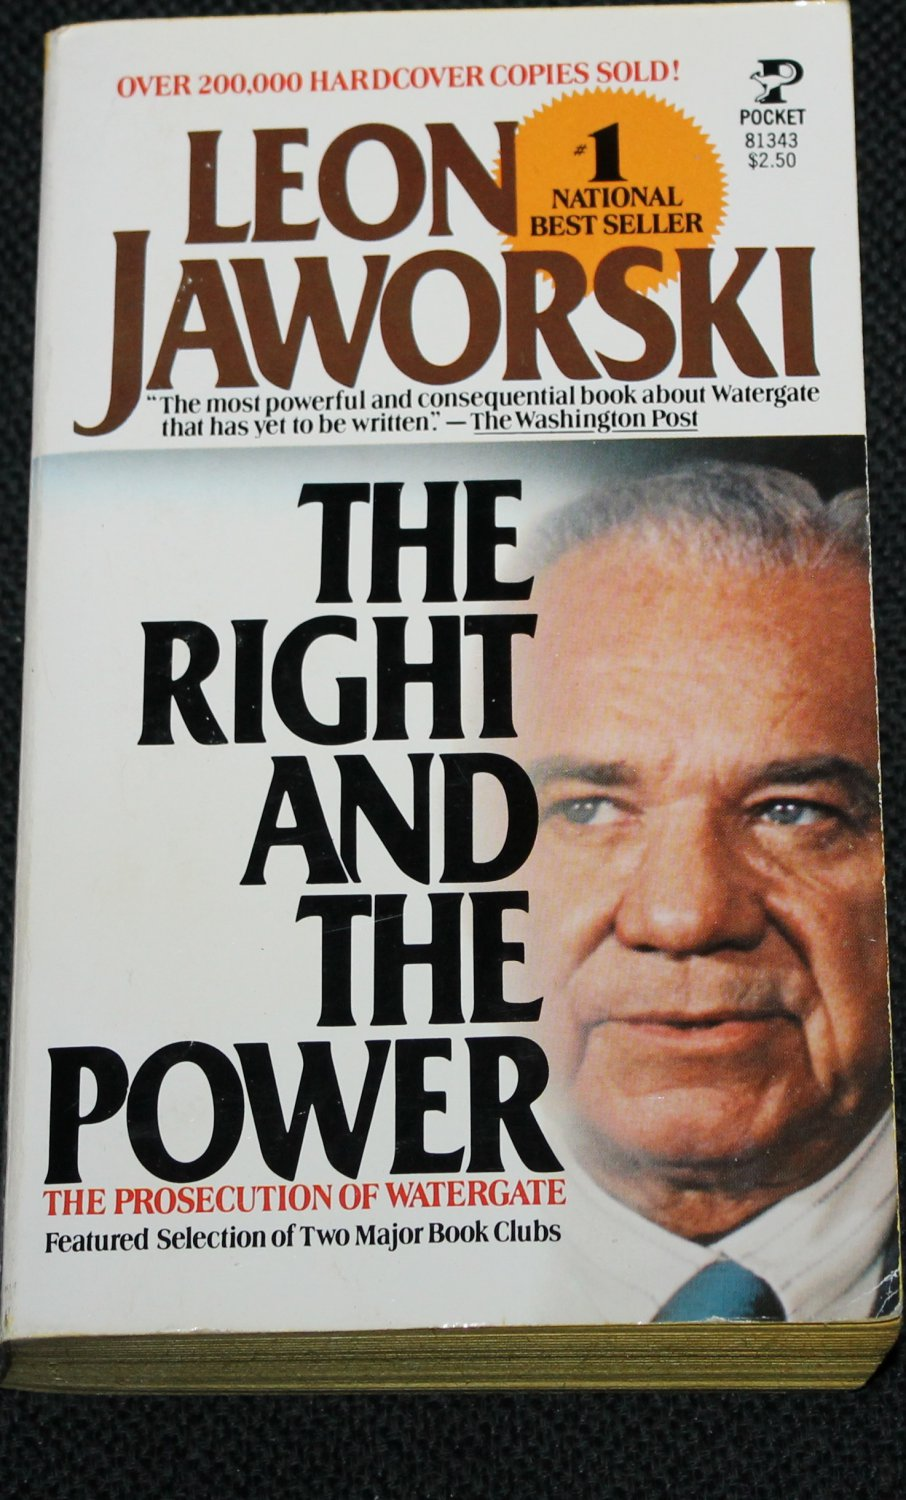 The RIght Hand And The Power - political book politics - Leon Jaworski